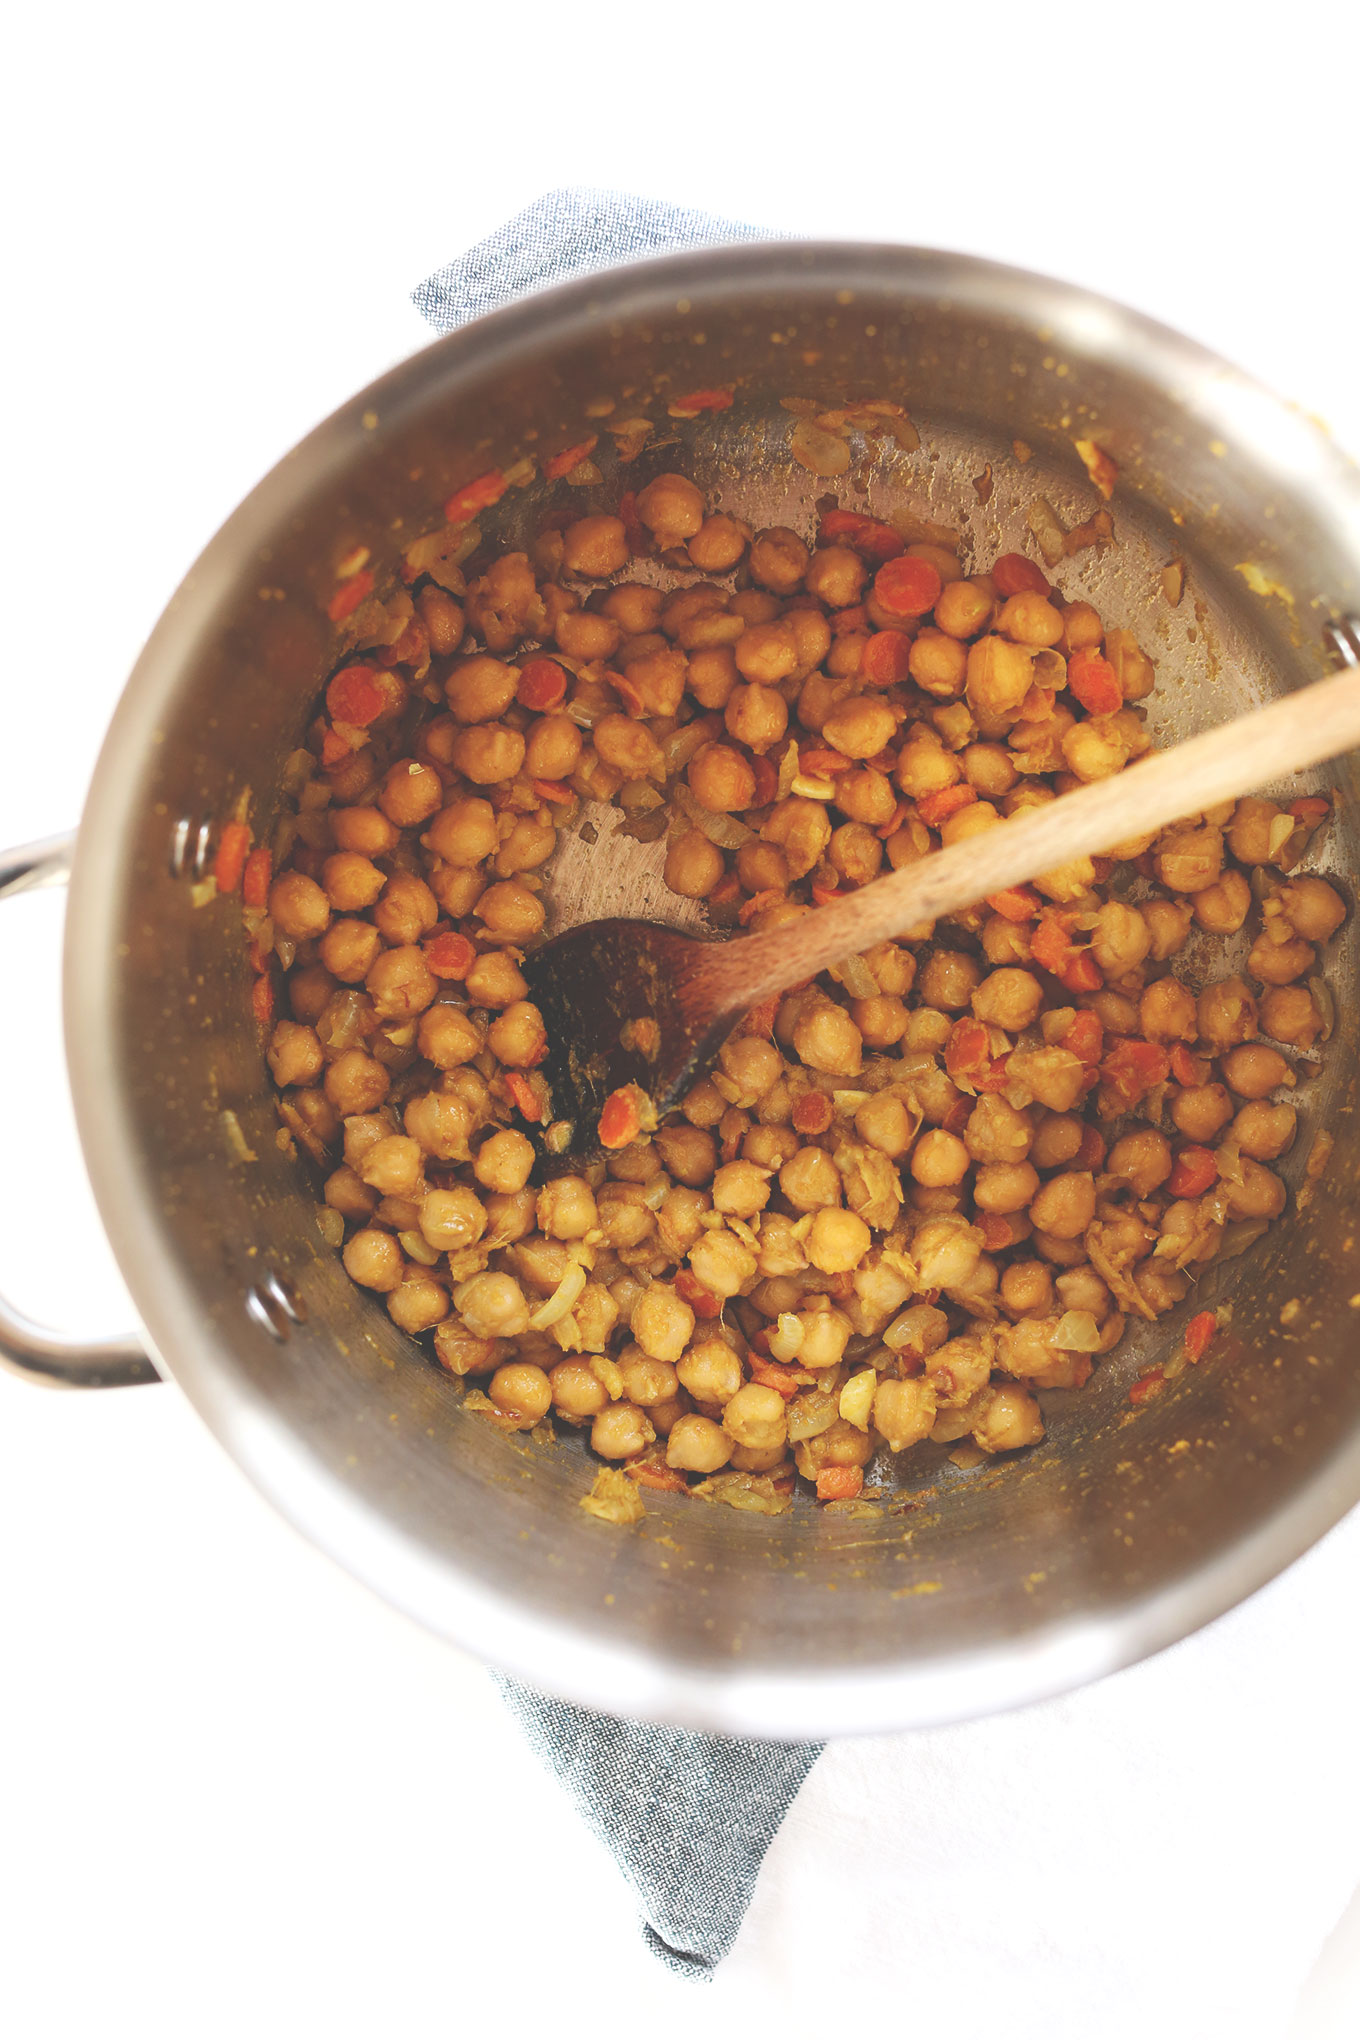 Cooking chickpeas for our simple Green Chickpea Curry recipe